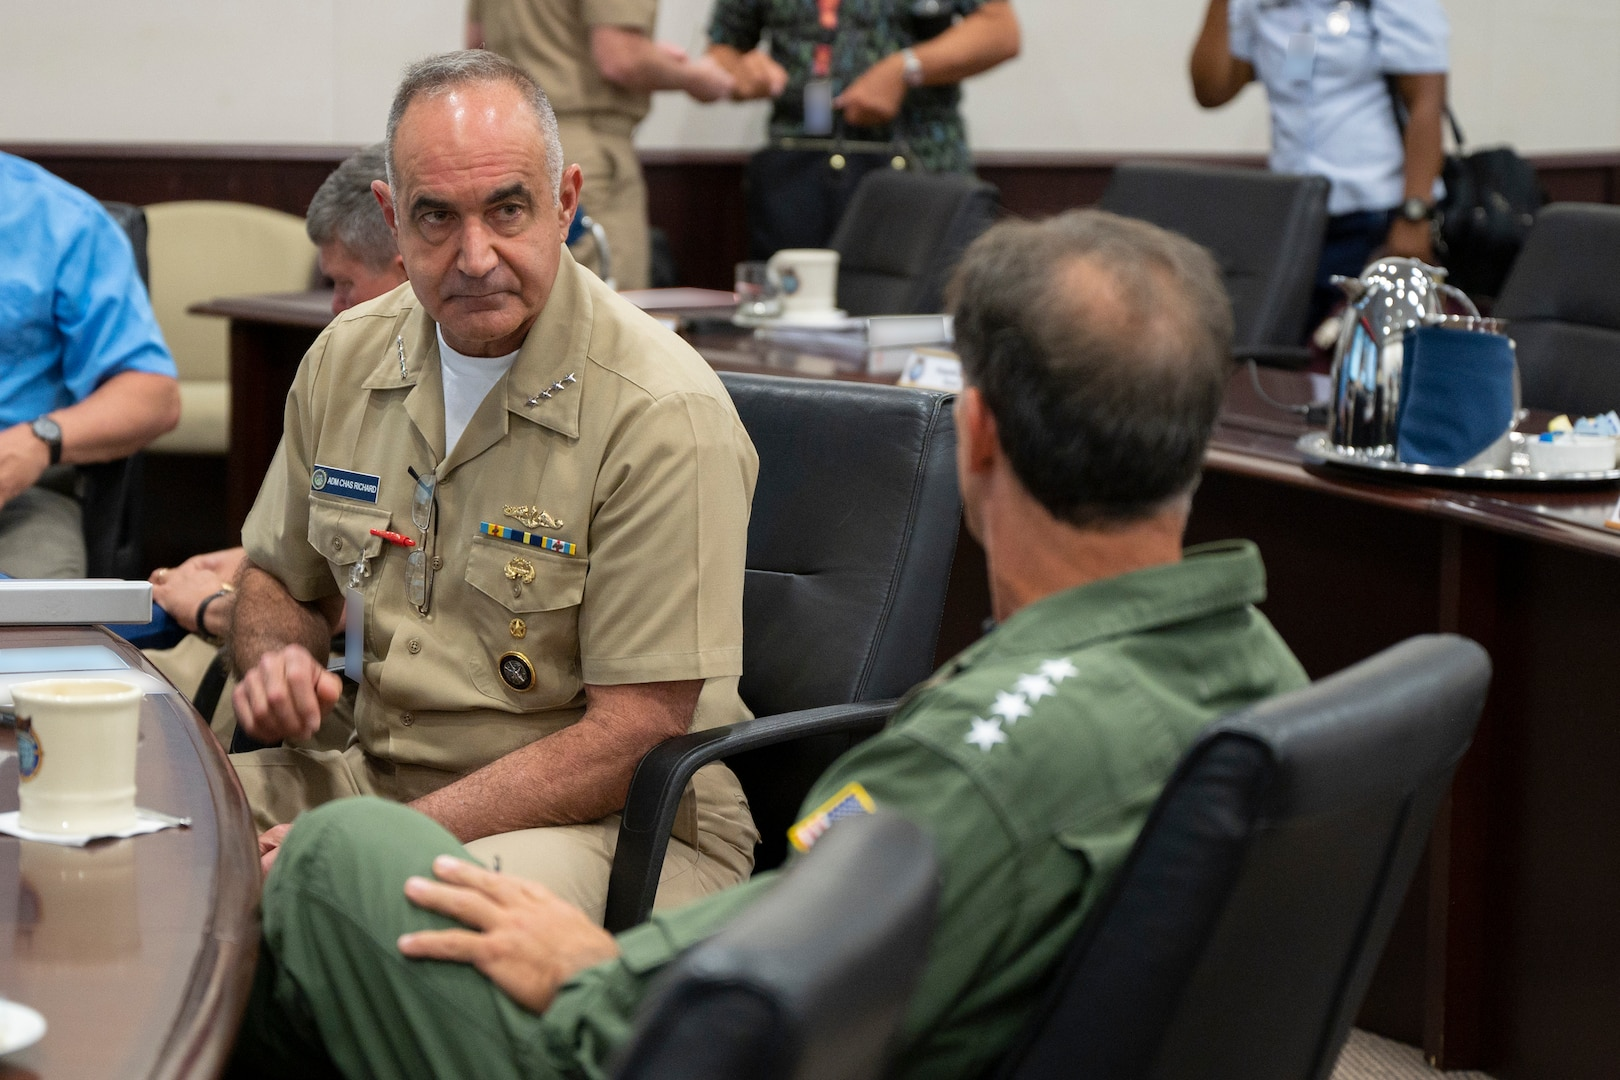 Adm. Richard visits with Adm. John Aquilino, U.S. Indo-Pacific Command commander. The leaders discussed key security issues and areas of integration required to address cross-domain regional challenges and global threats.